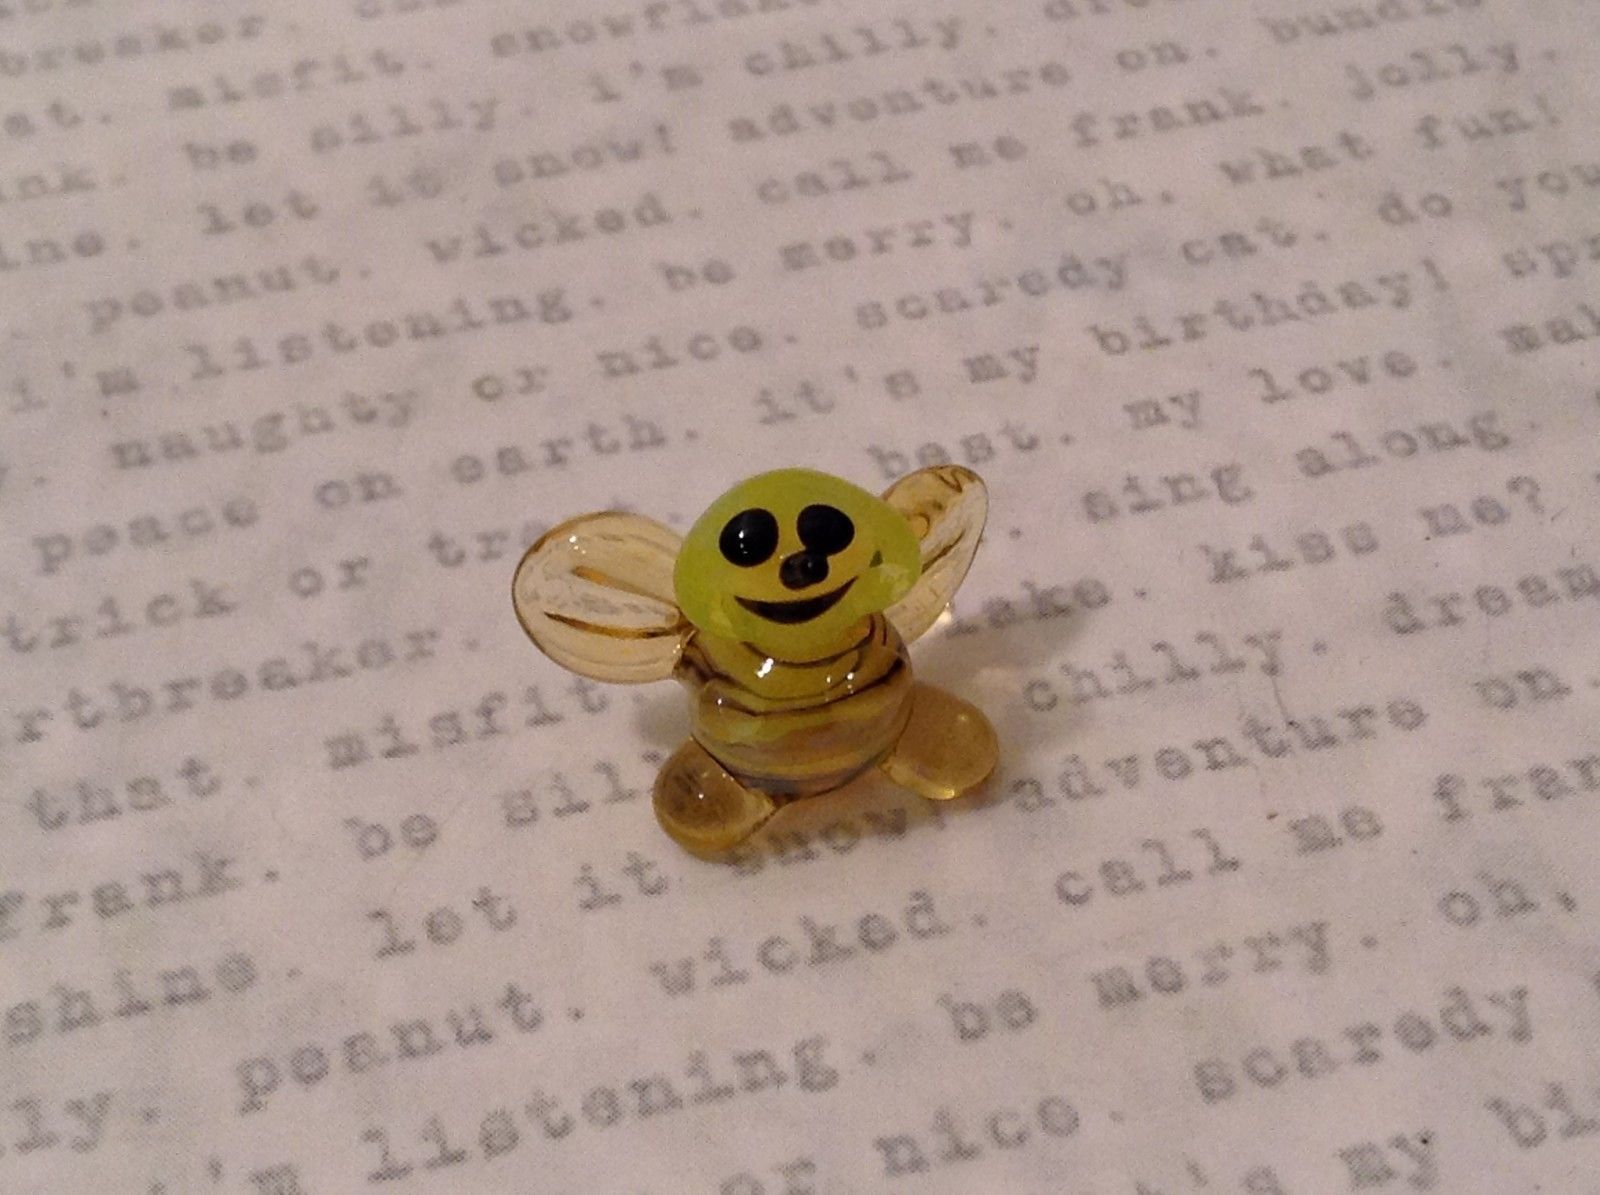 Micro miniature hand blown glass figurine USA smiling yellow honeybee NIB